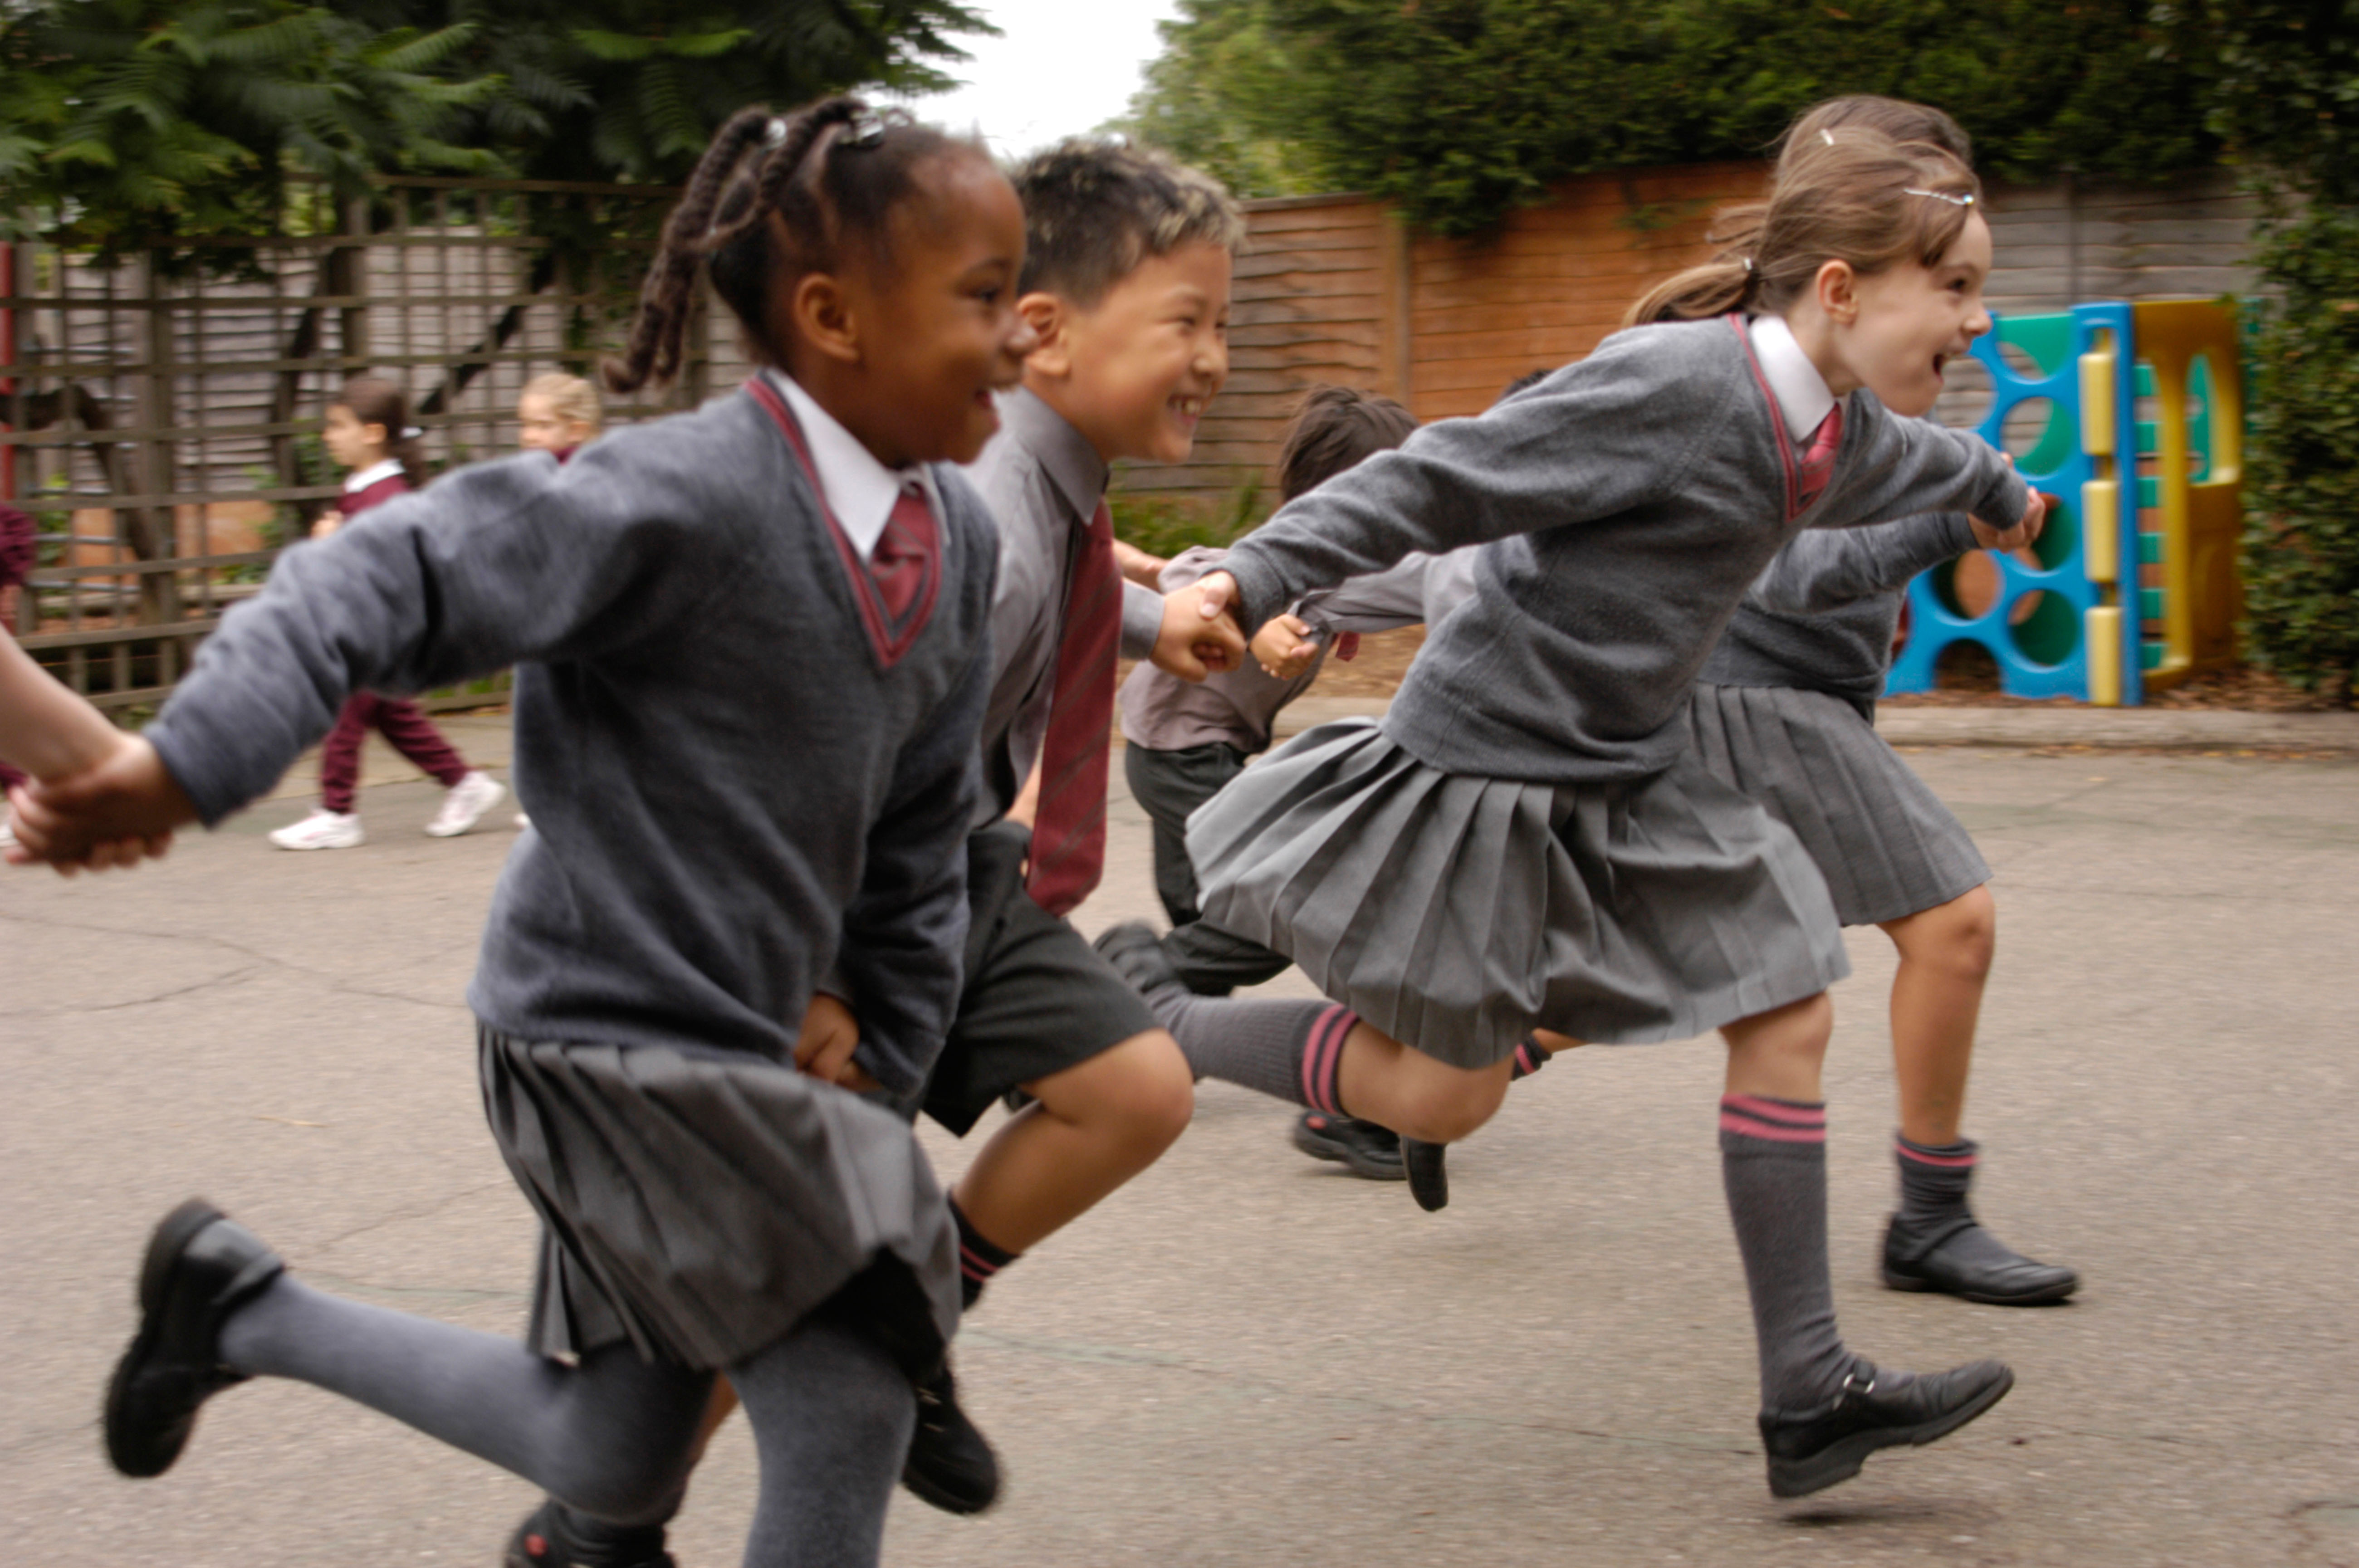 Is your child getting enough physical activity during their school day?